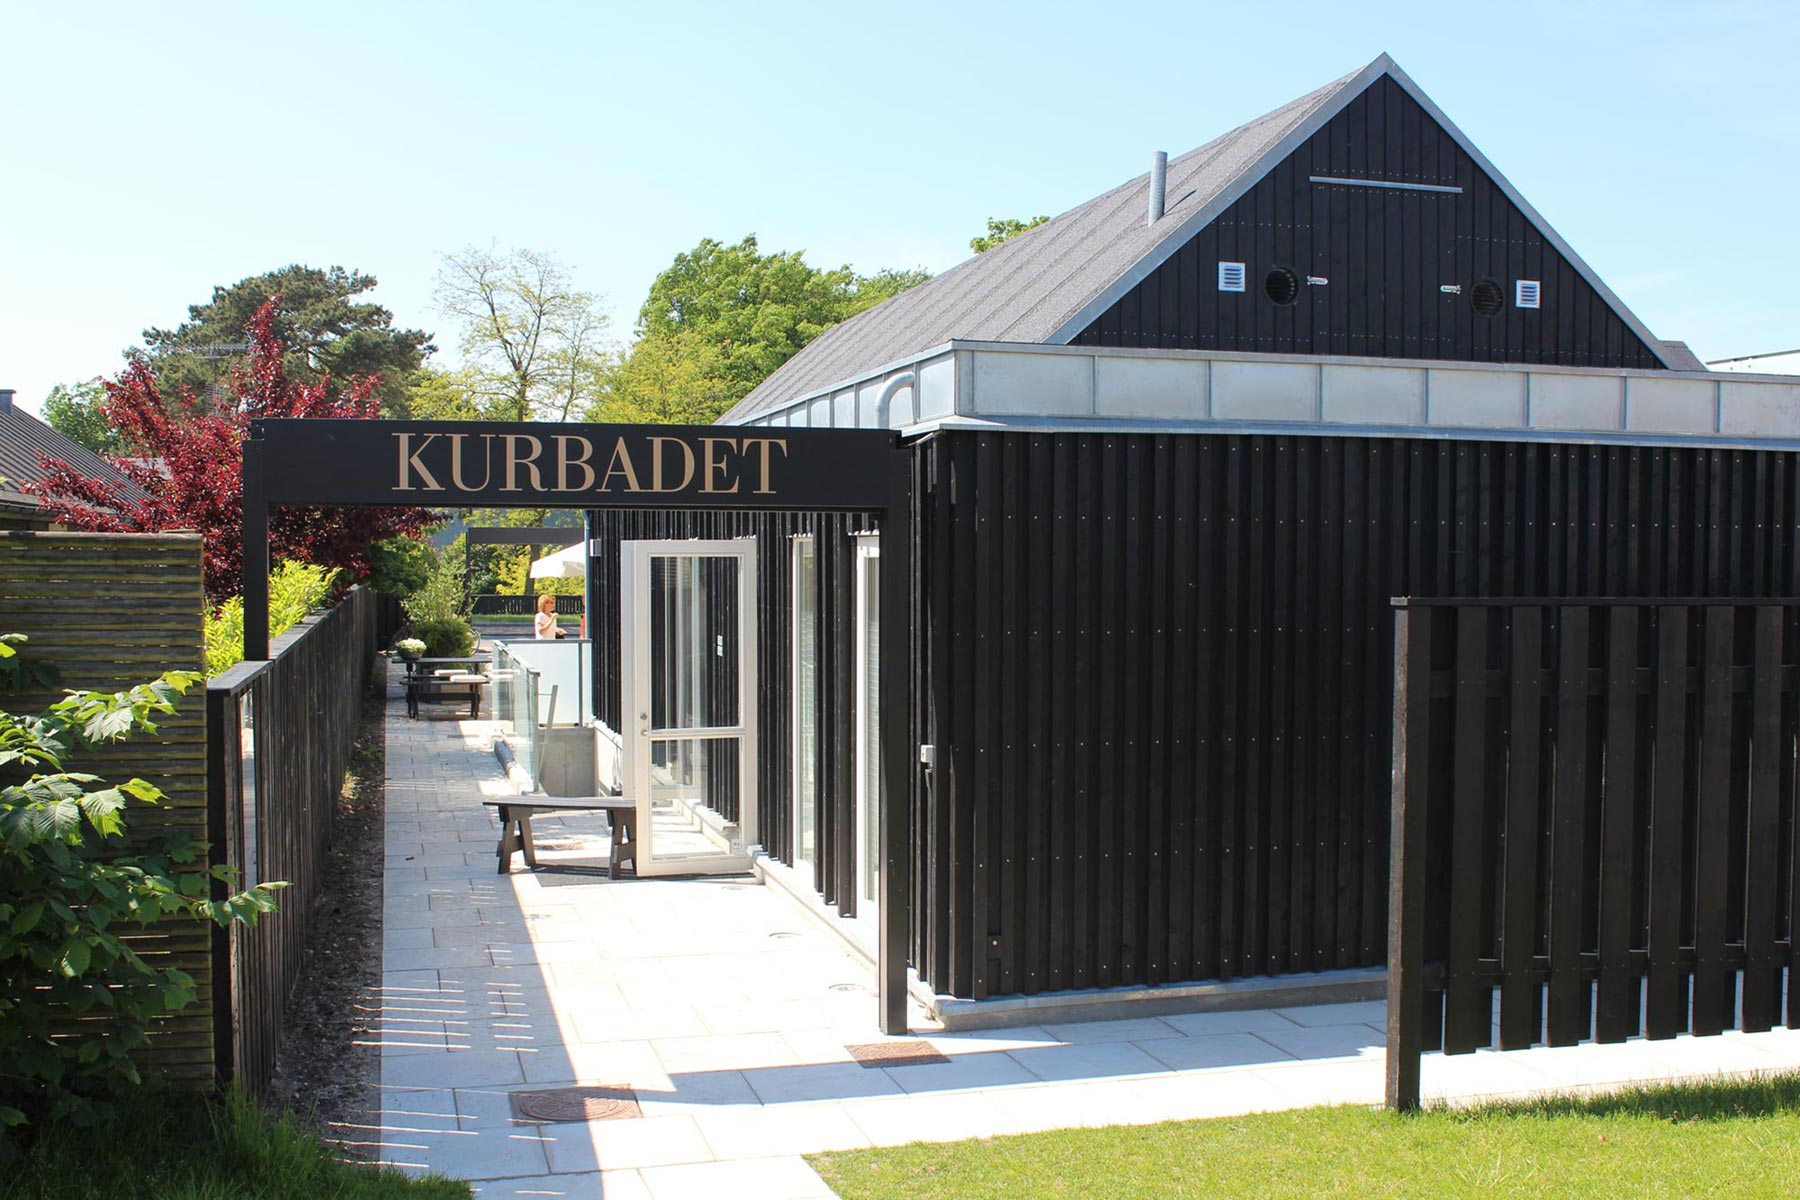 Kurbadet Hornbæk - Luxurious spa resort in the historic beach town of Hornbæk